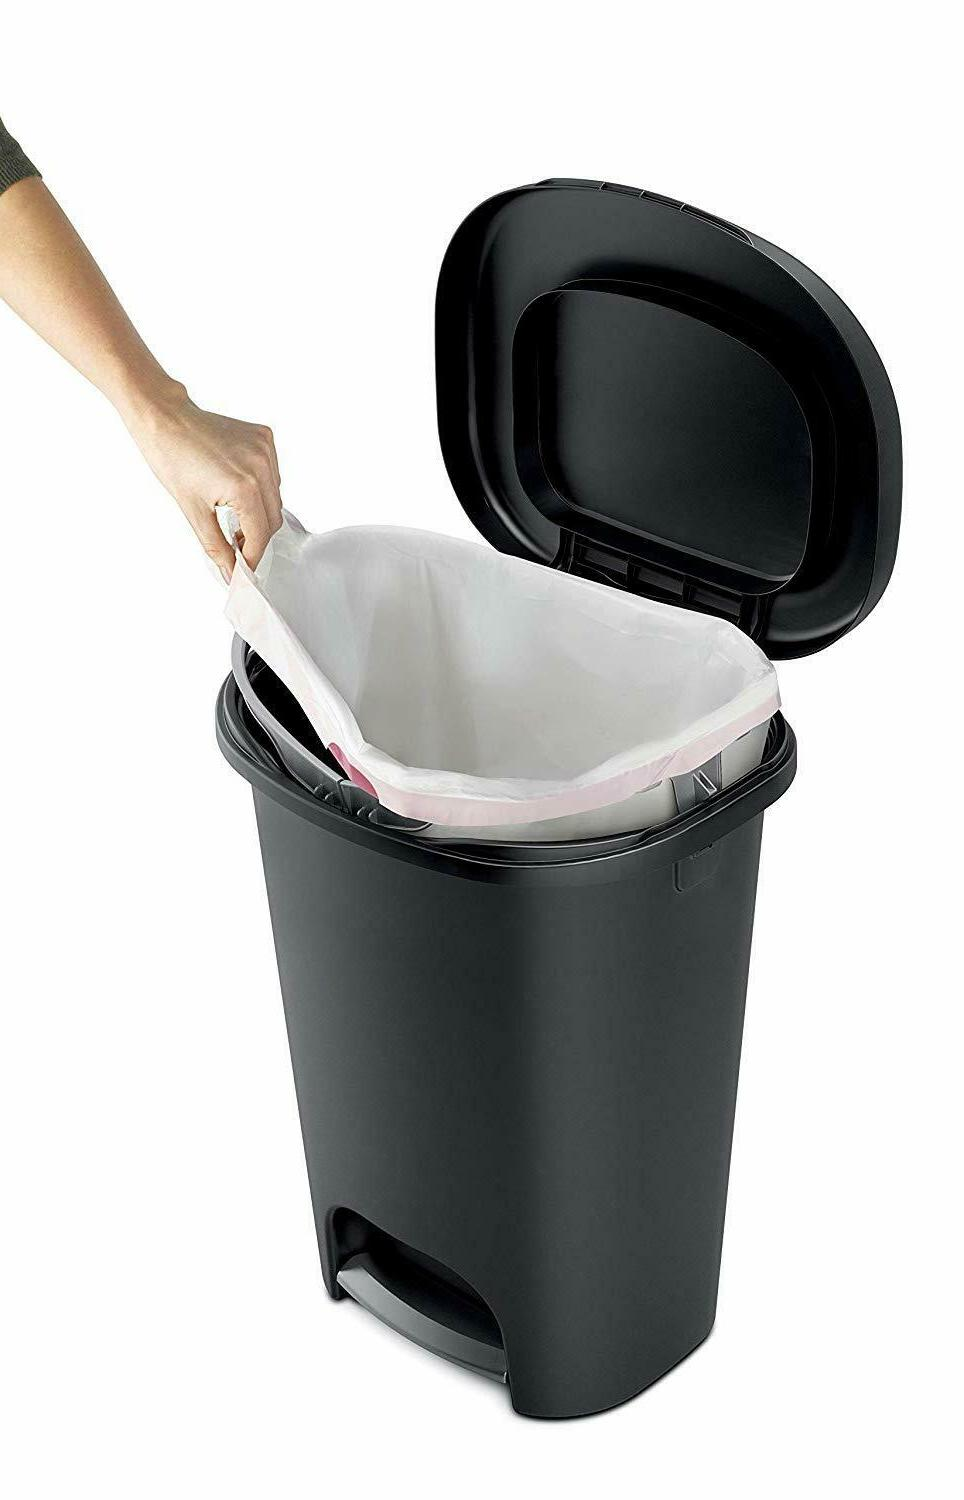 Rubbermaid Step-On Trash Can Home, and Bathroom Garbage